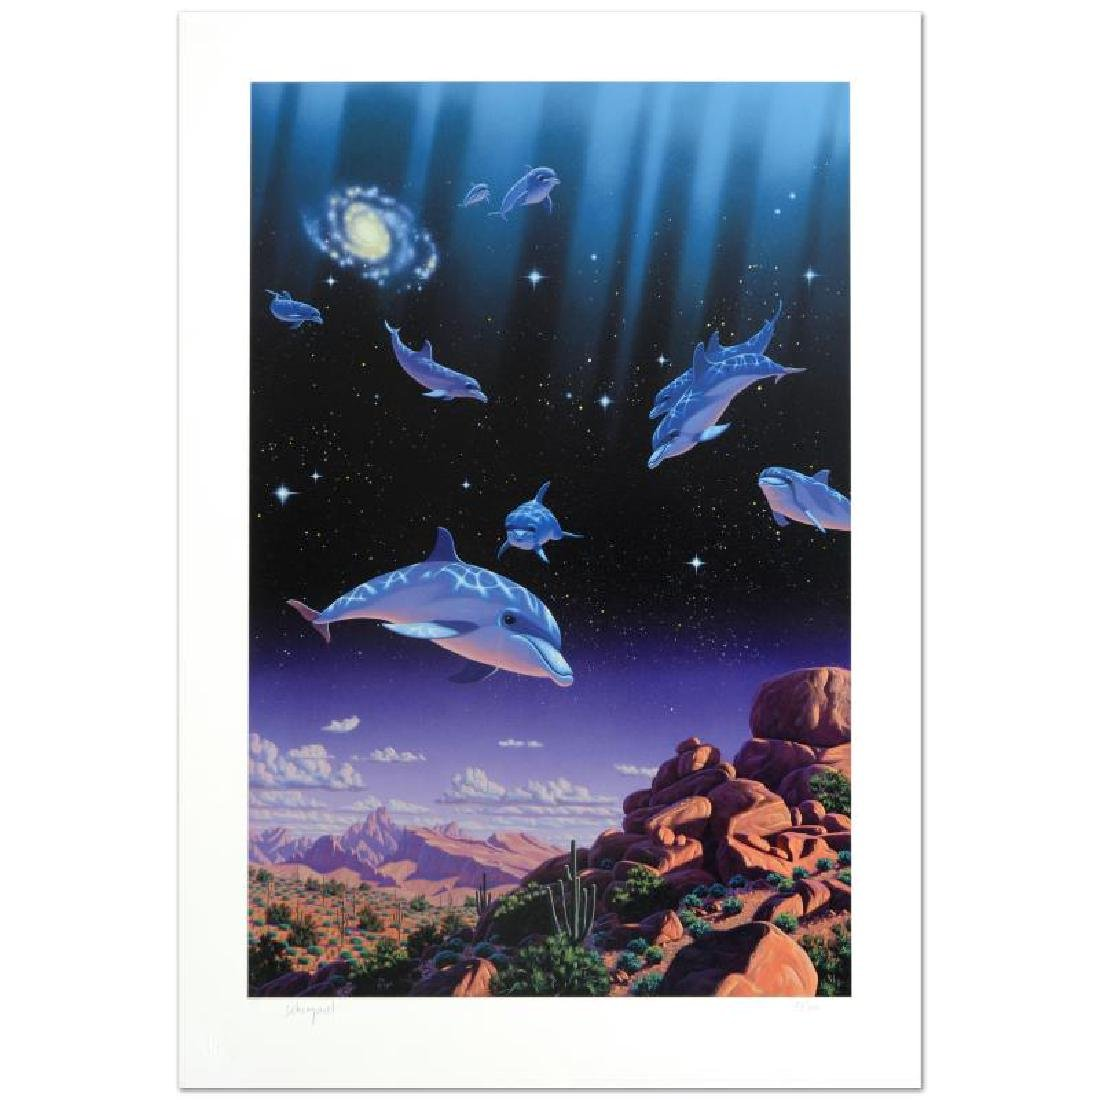 Ocean Dreams Limited Edition Giclee by William Schimmel